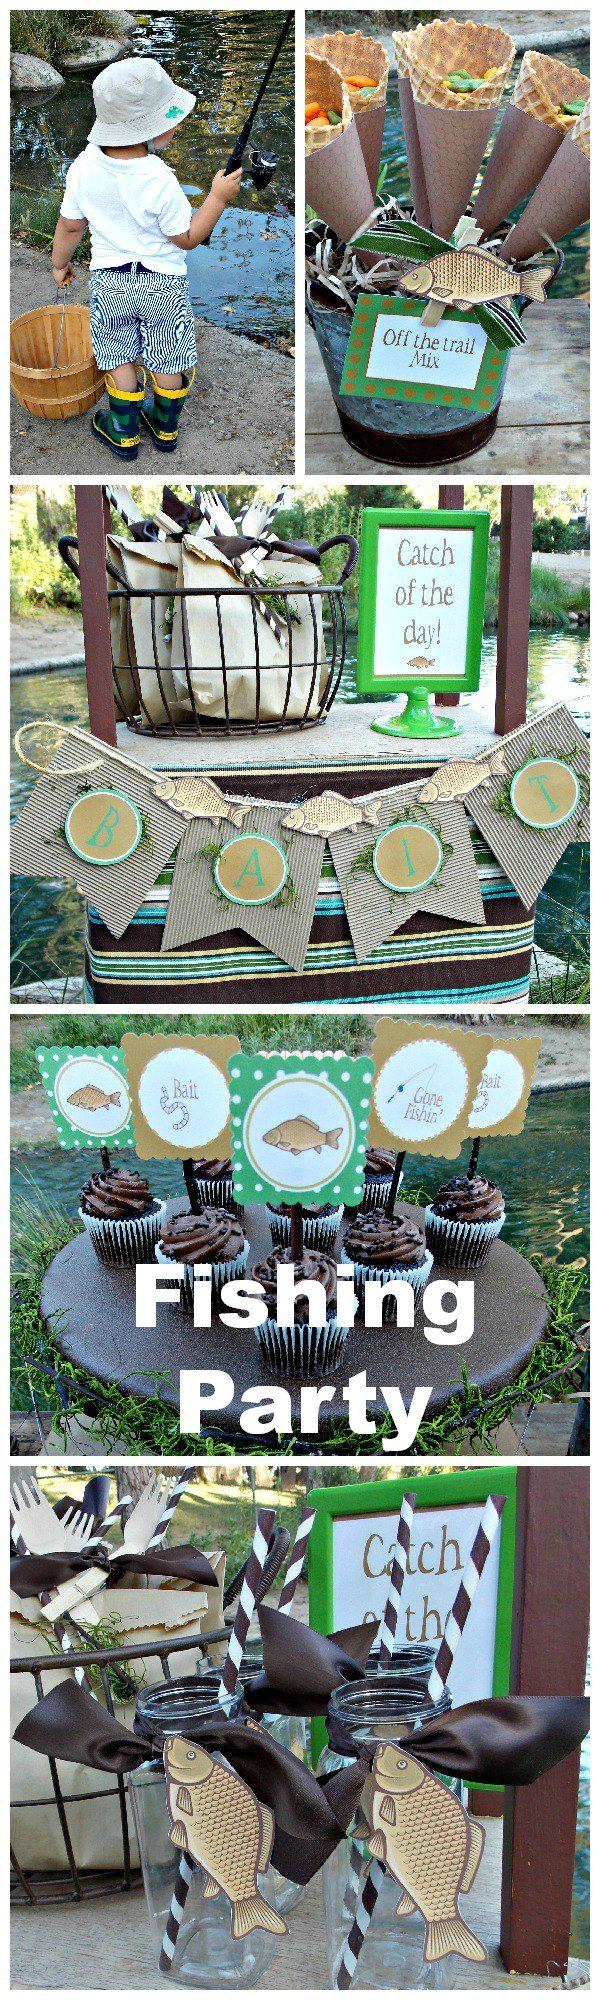 The cutest fishing party ideas! | Laura's Little Party